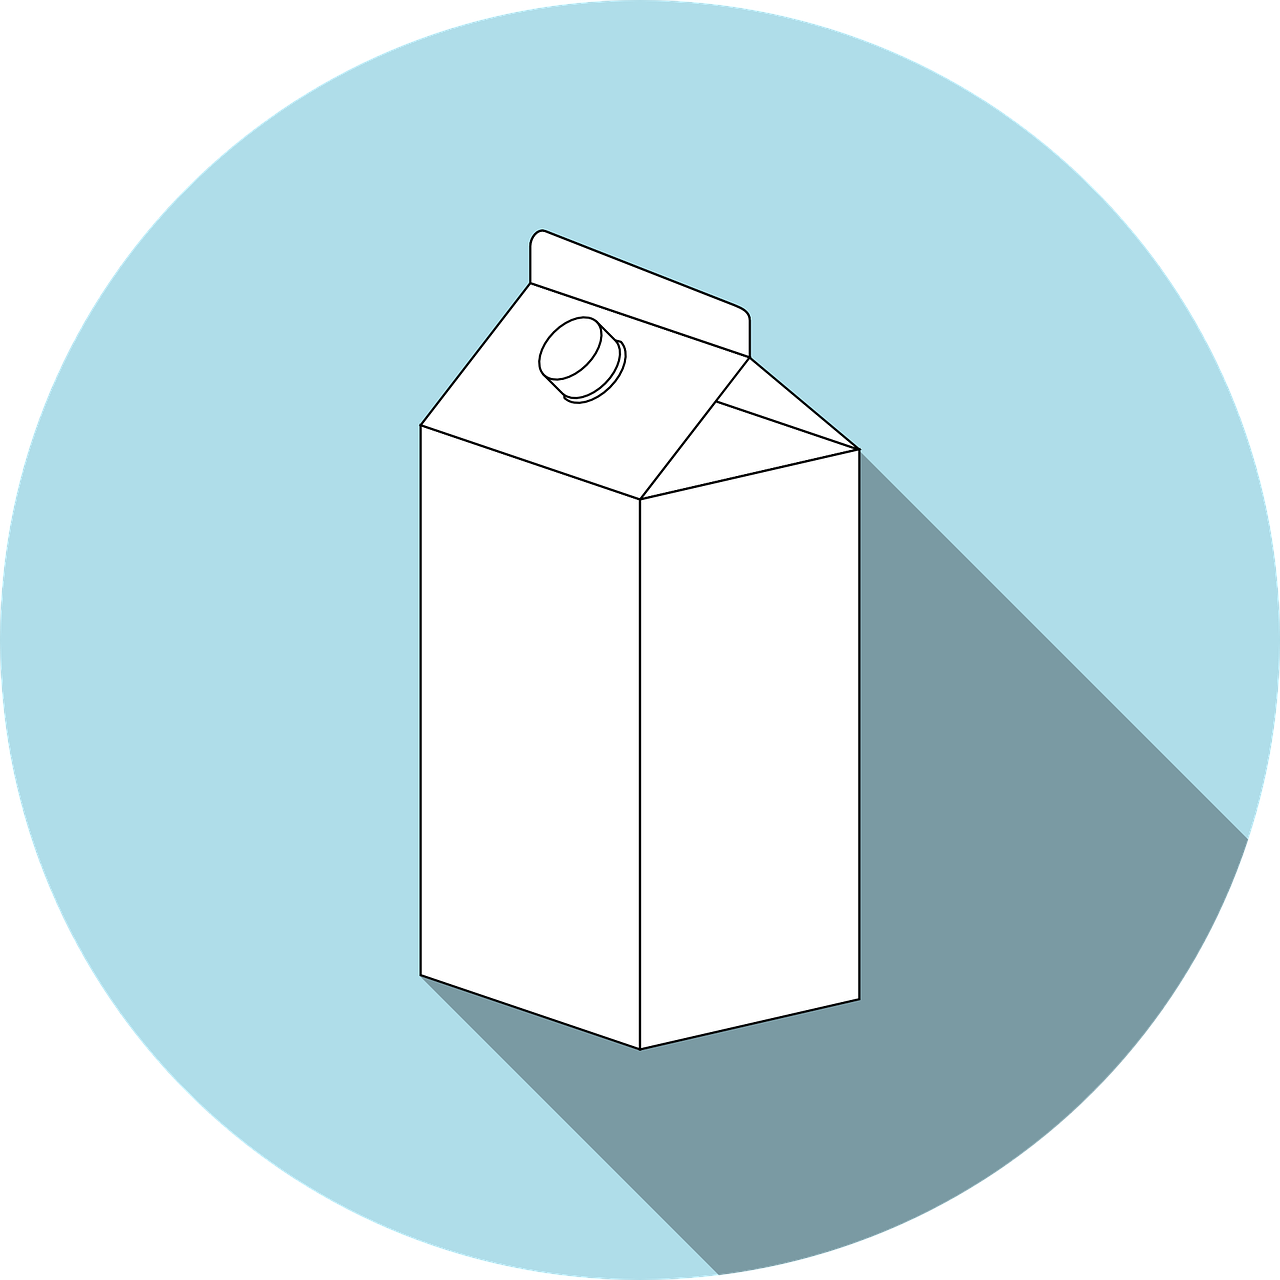 Milk Carton Graphic